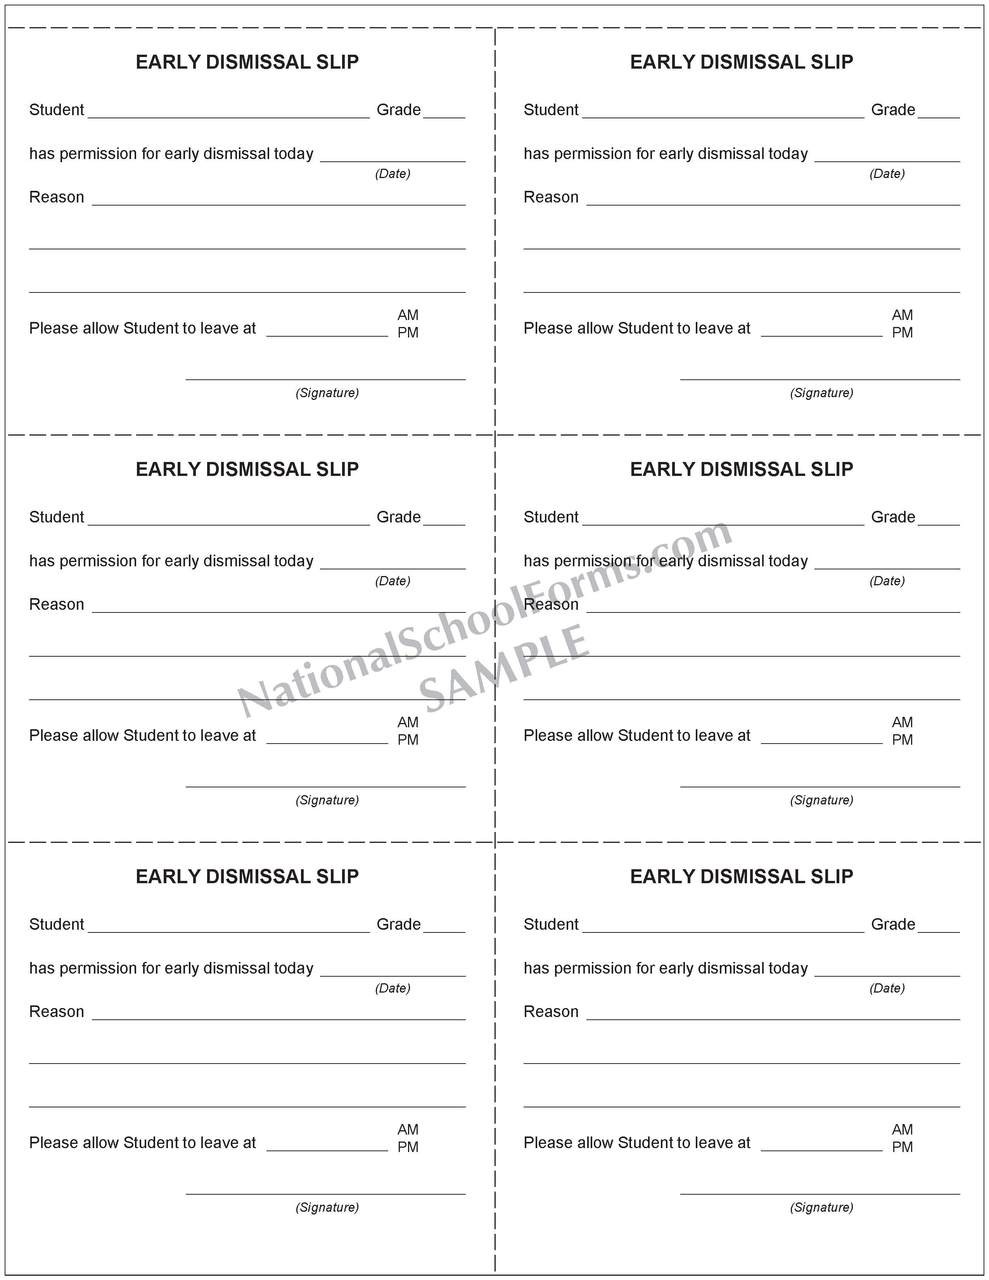 Early Dismissal Slip Booklet (248)